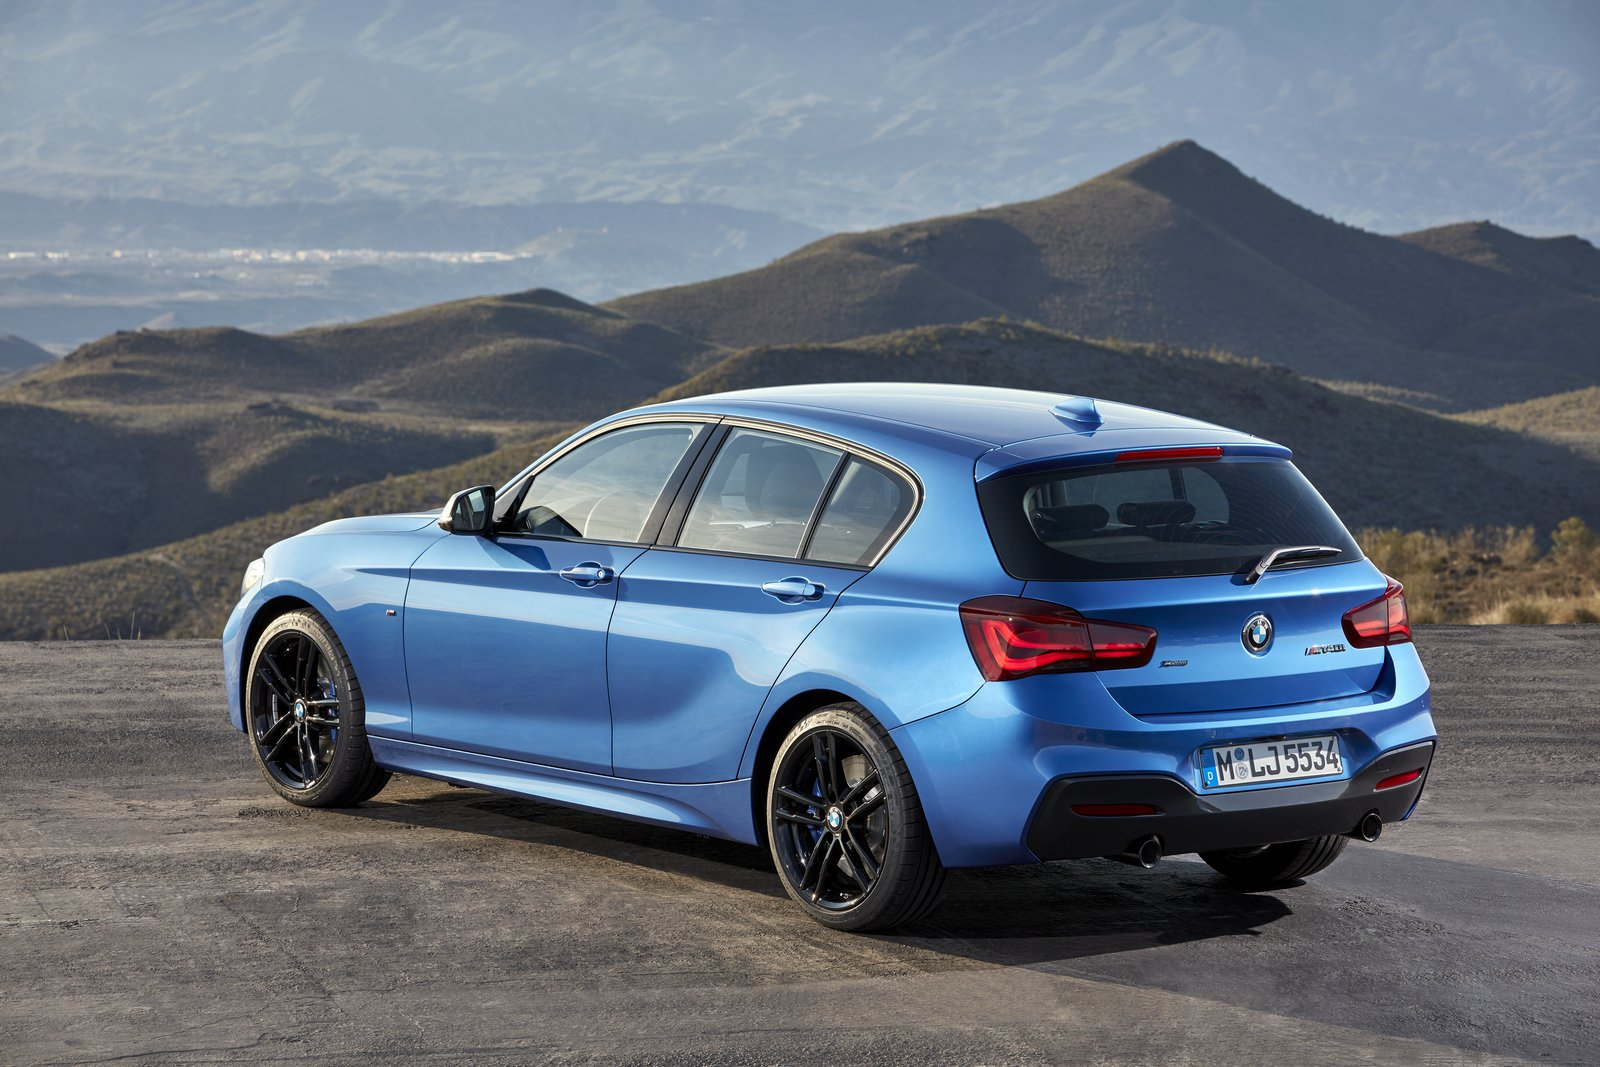 Bmw X3 2017 Interior >> 2018 BMW 1 Series refreshed with new interior and more technology - ForceGT.com